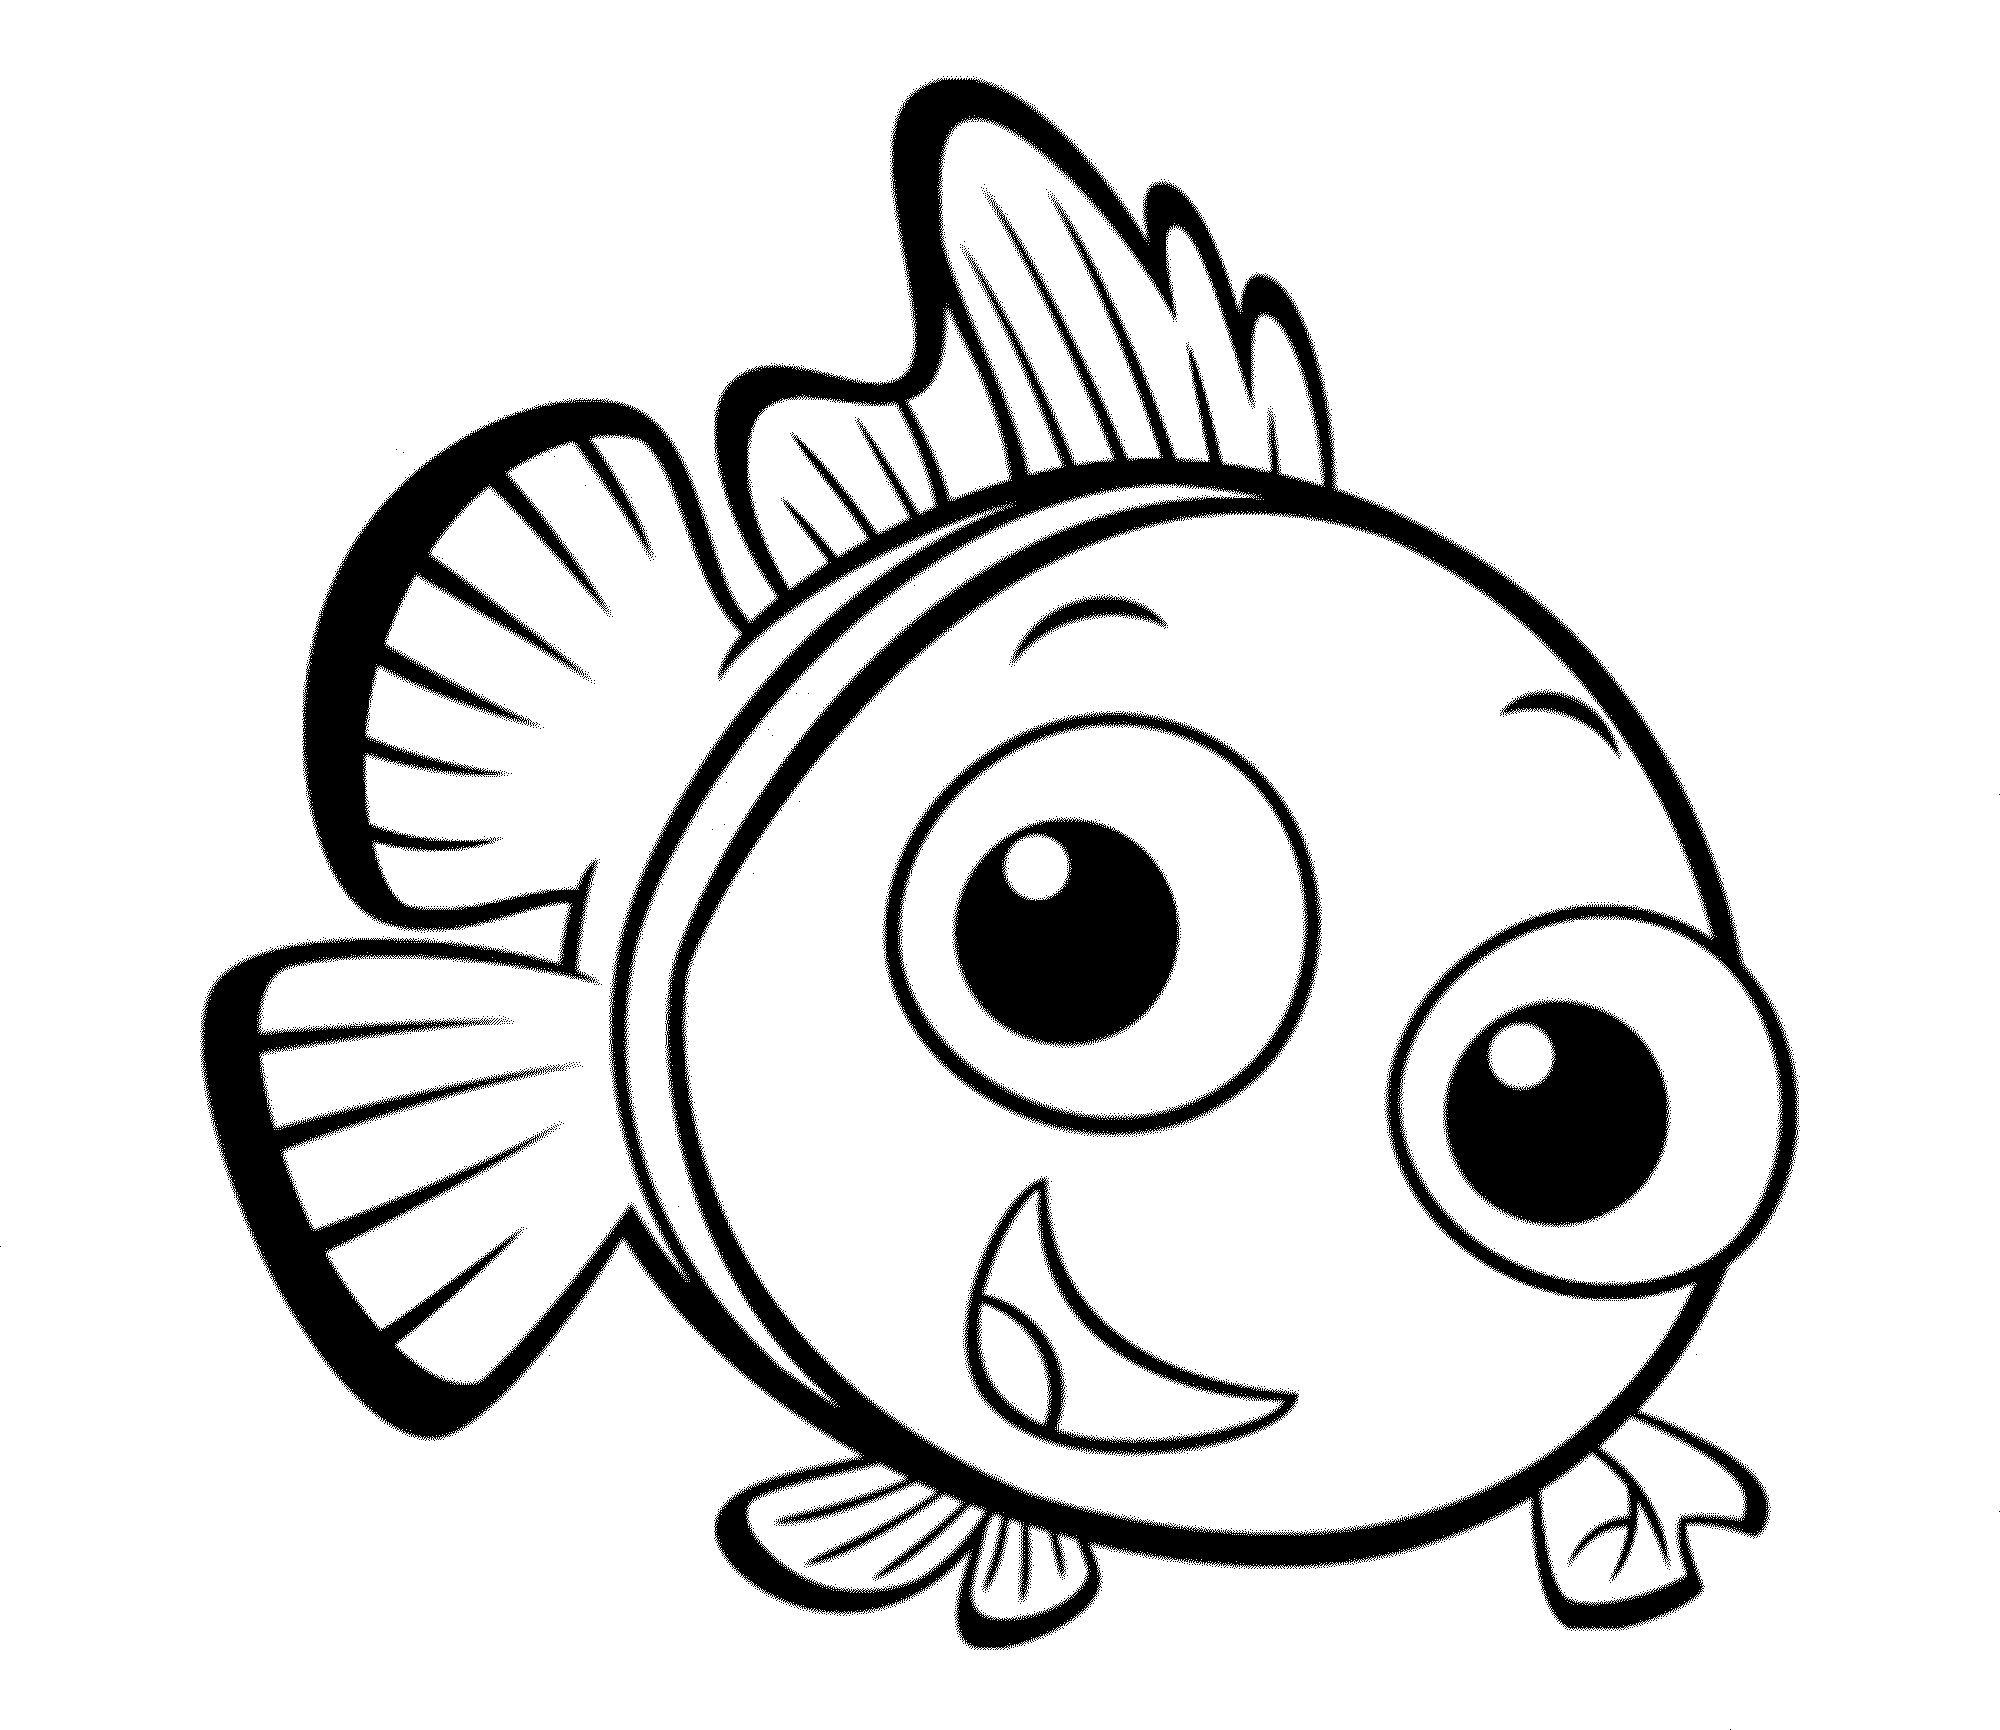 large fish coloring page fish coloring pages clip art library large coloring page fish